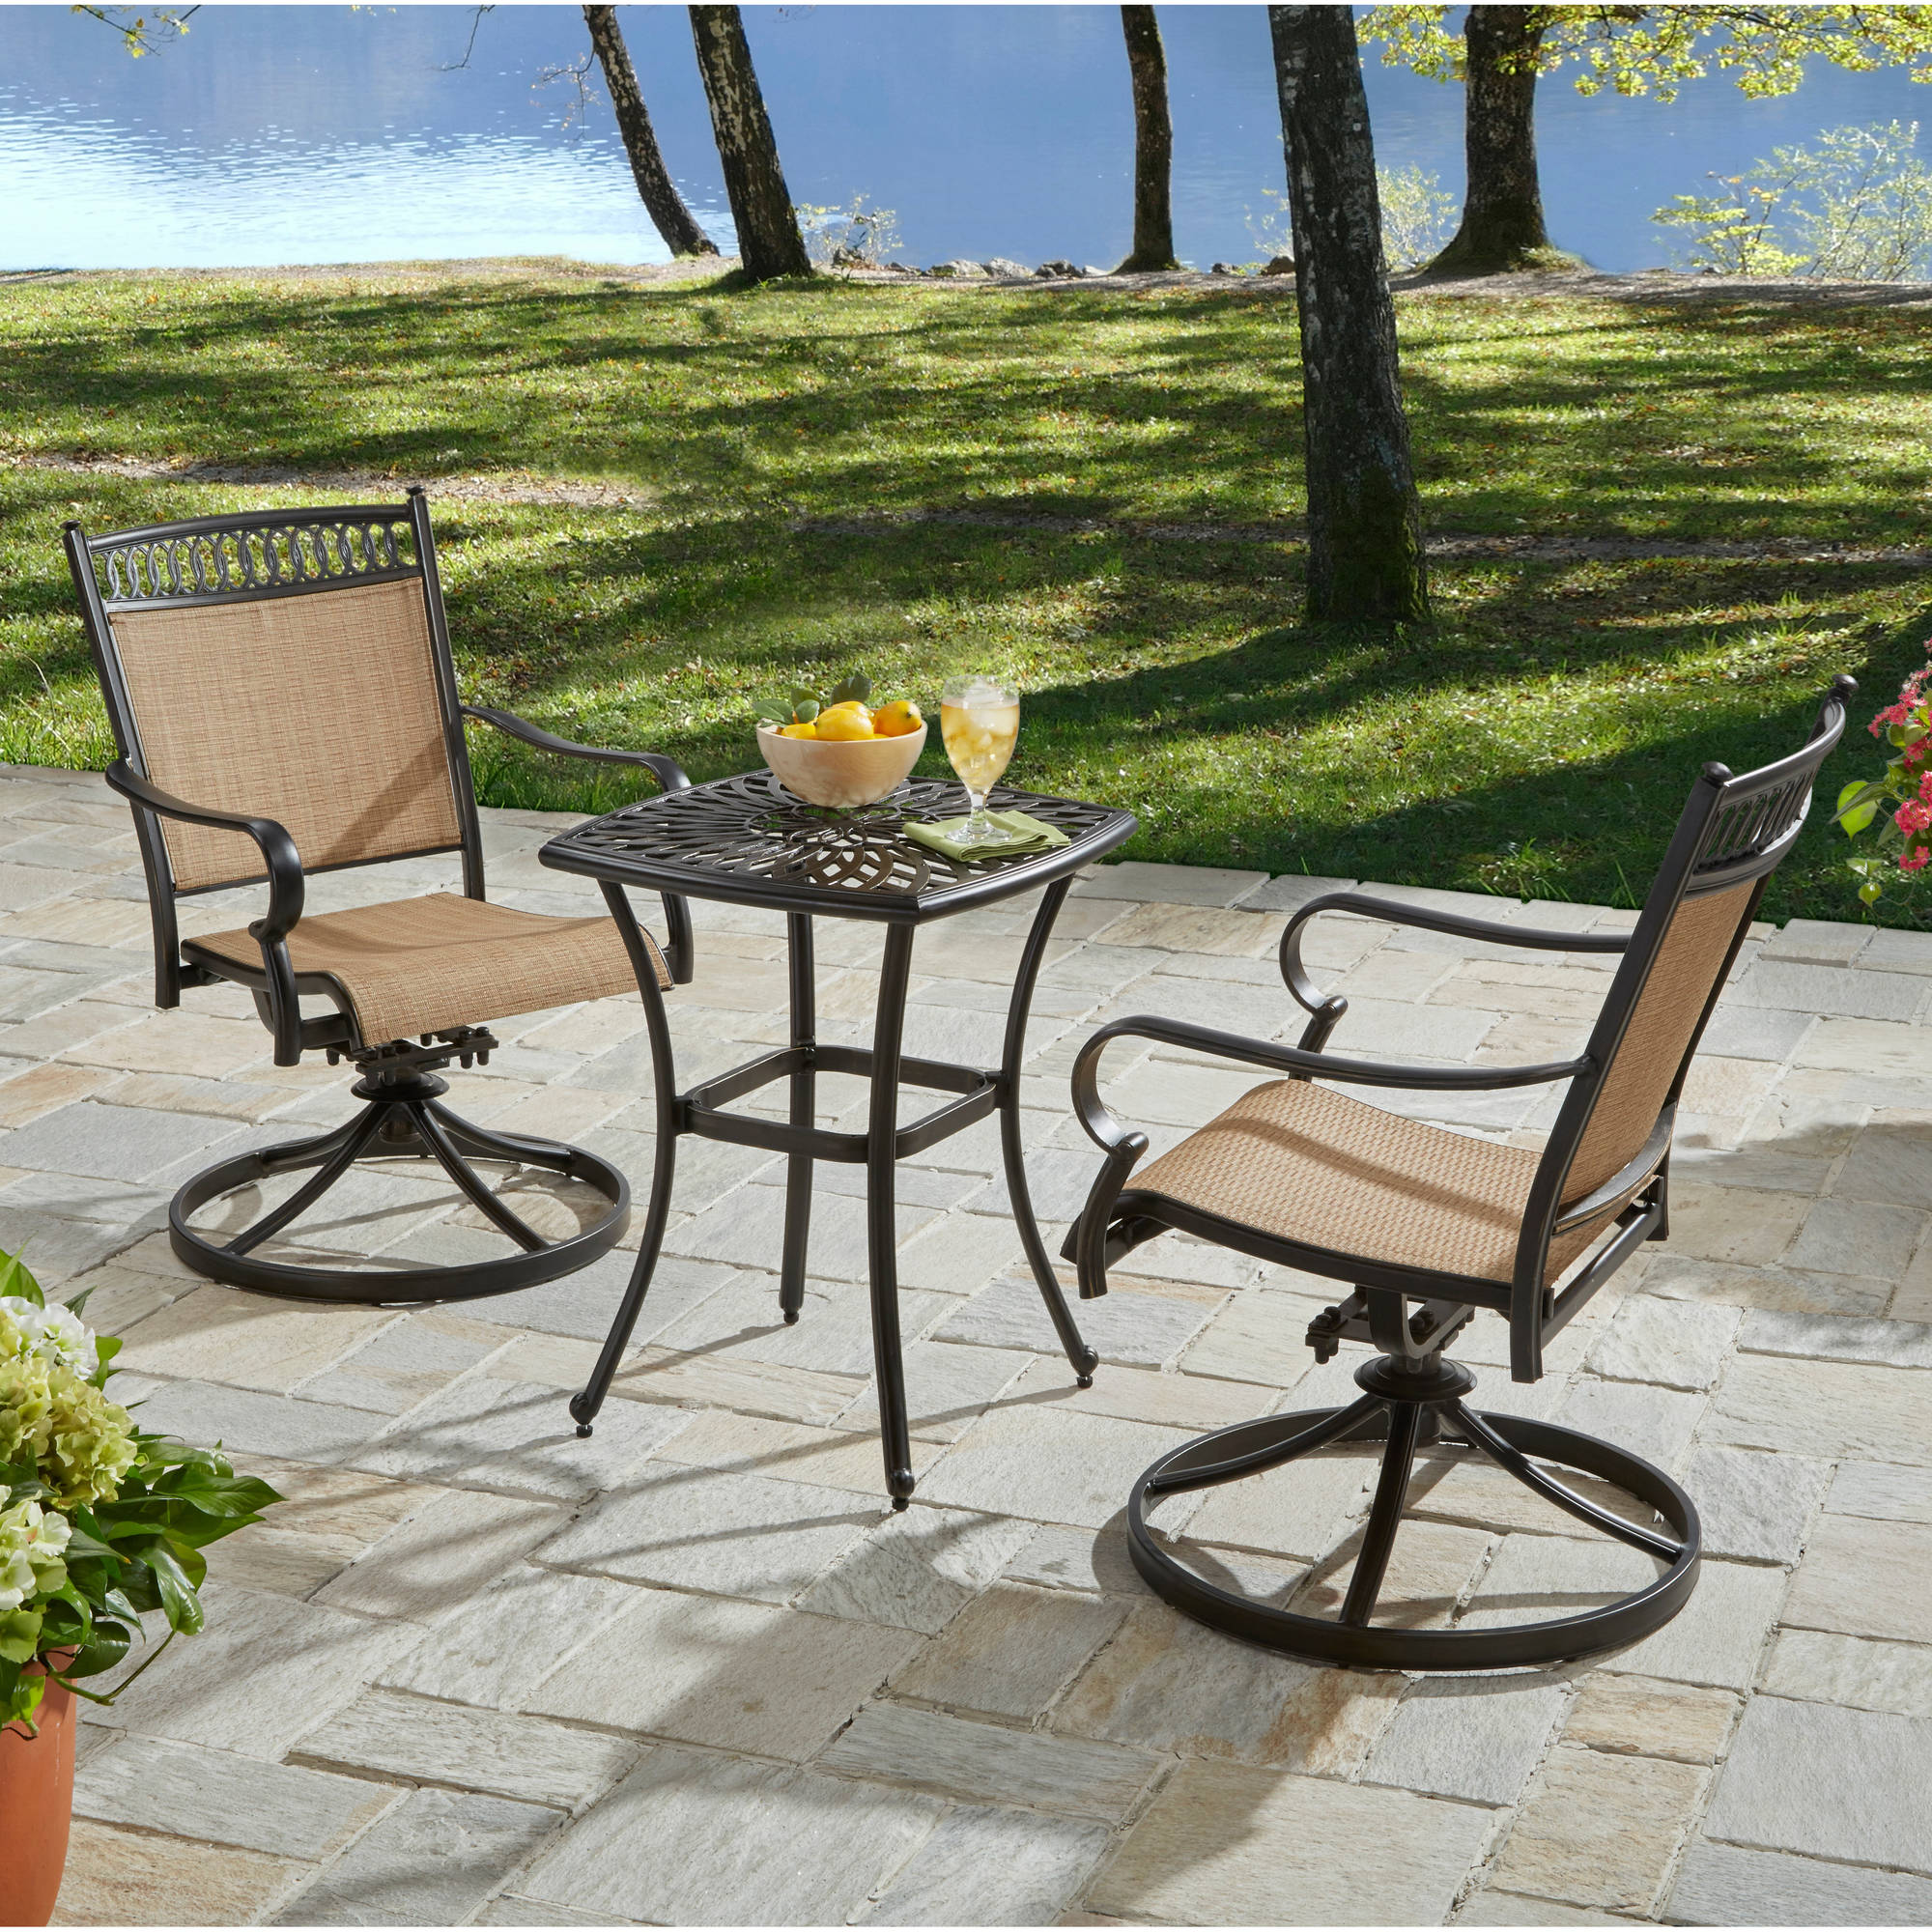 Better Homes and Gardens Patio Furniture Walmartcom